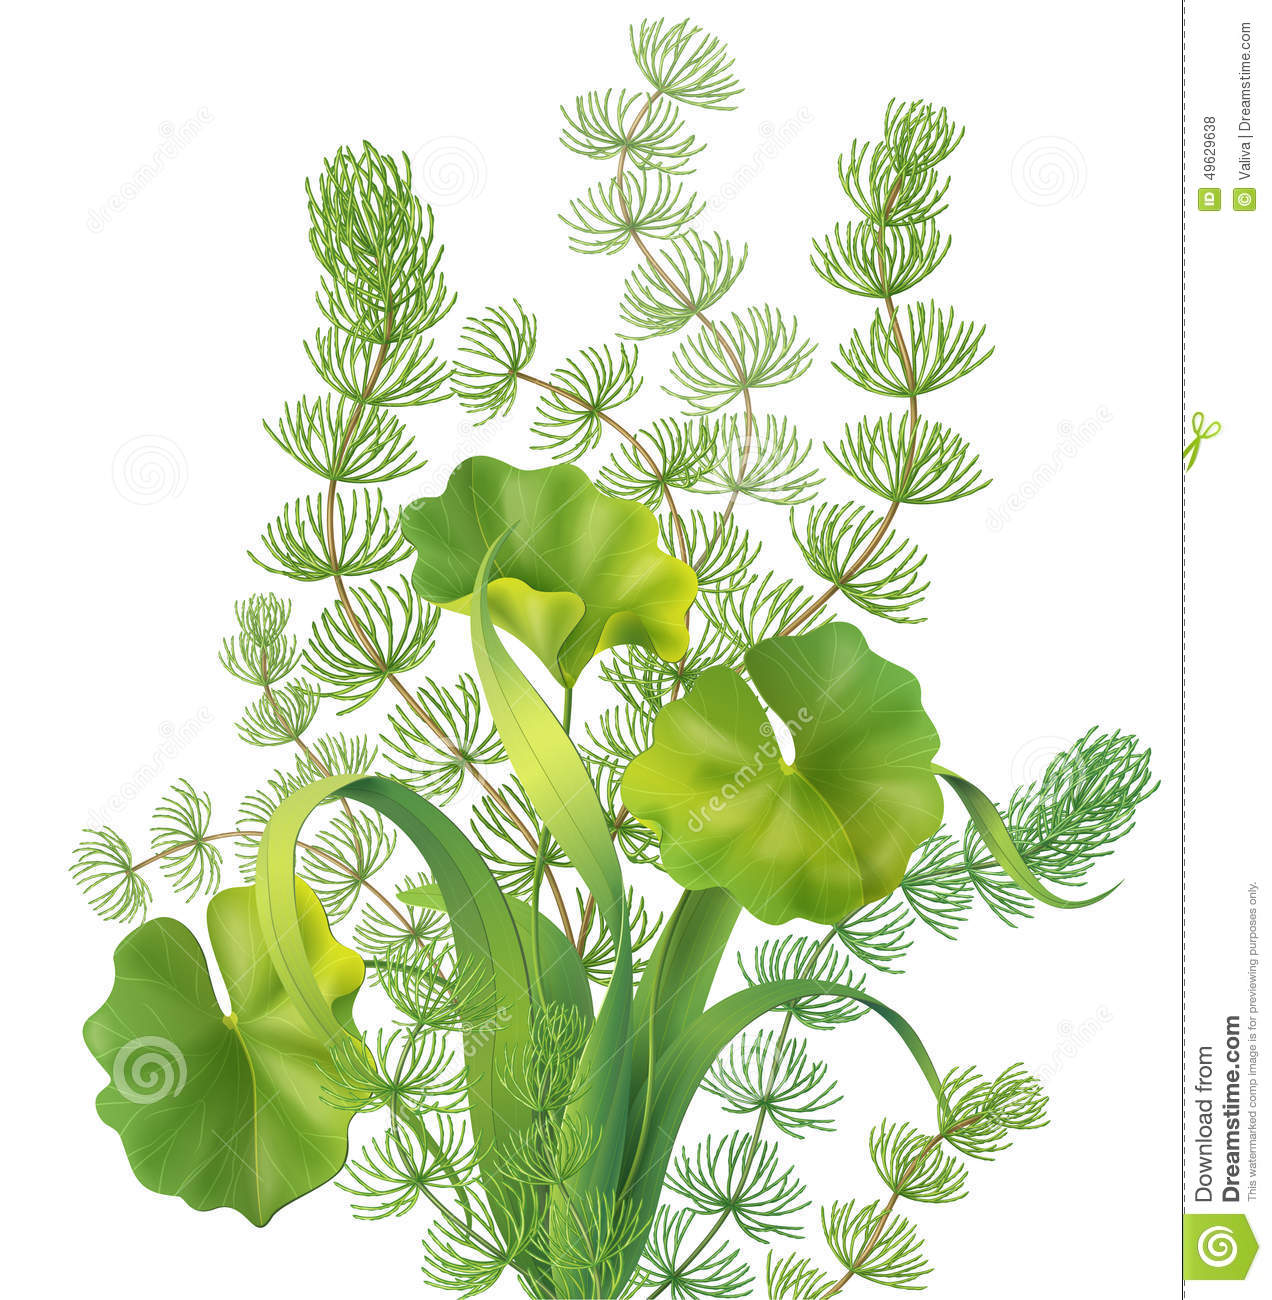 Aquatic Plants Stock Illustrations.